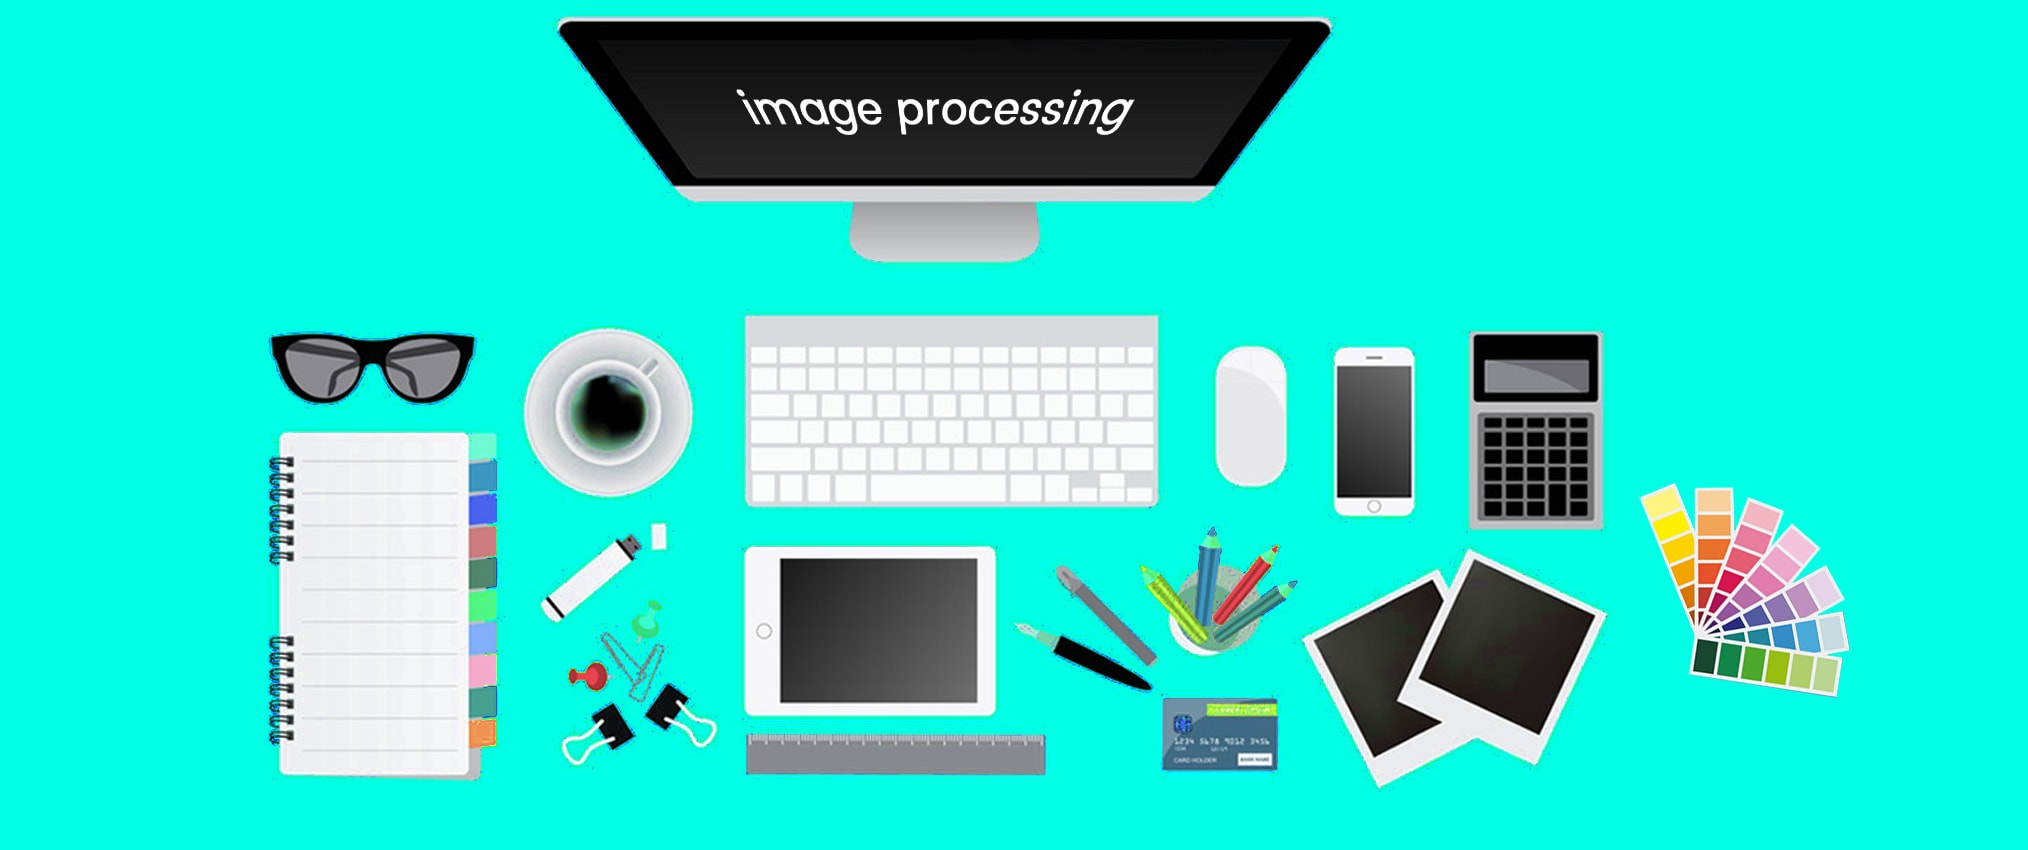 awesome-feature-of-image-processing-services